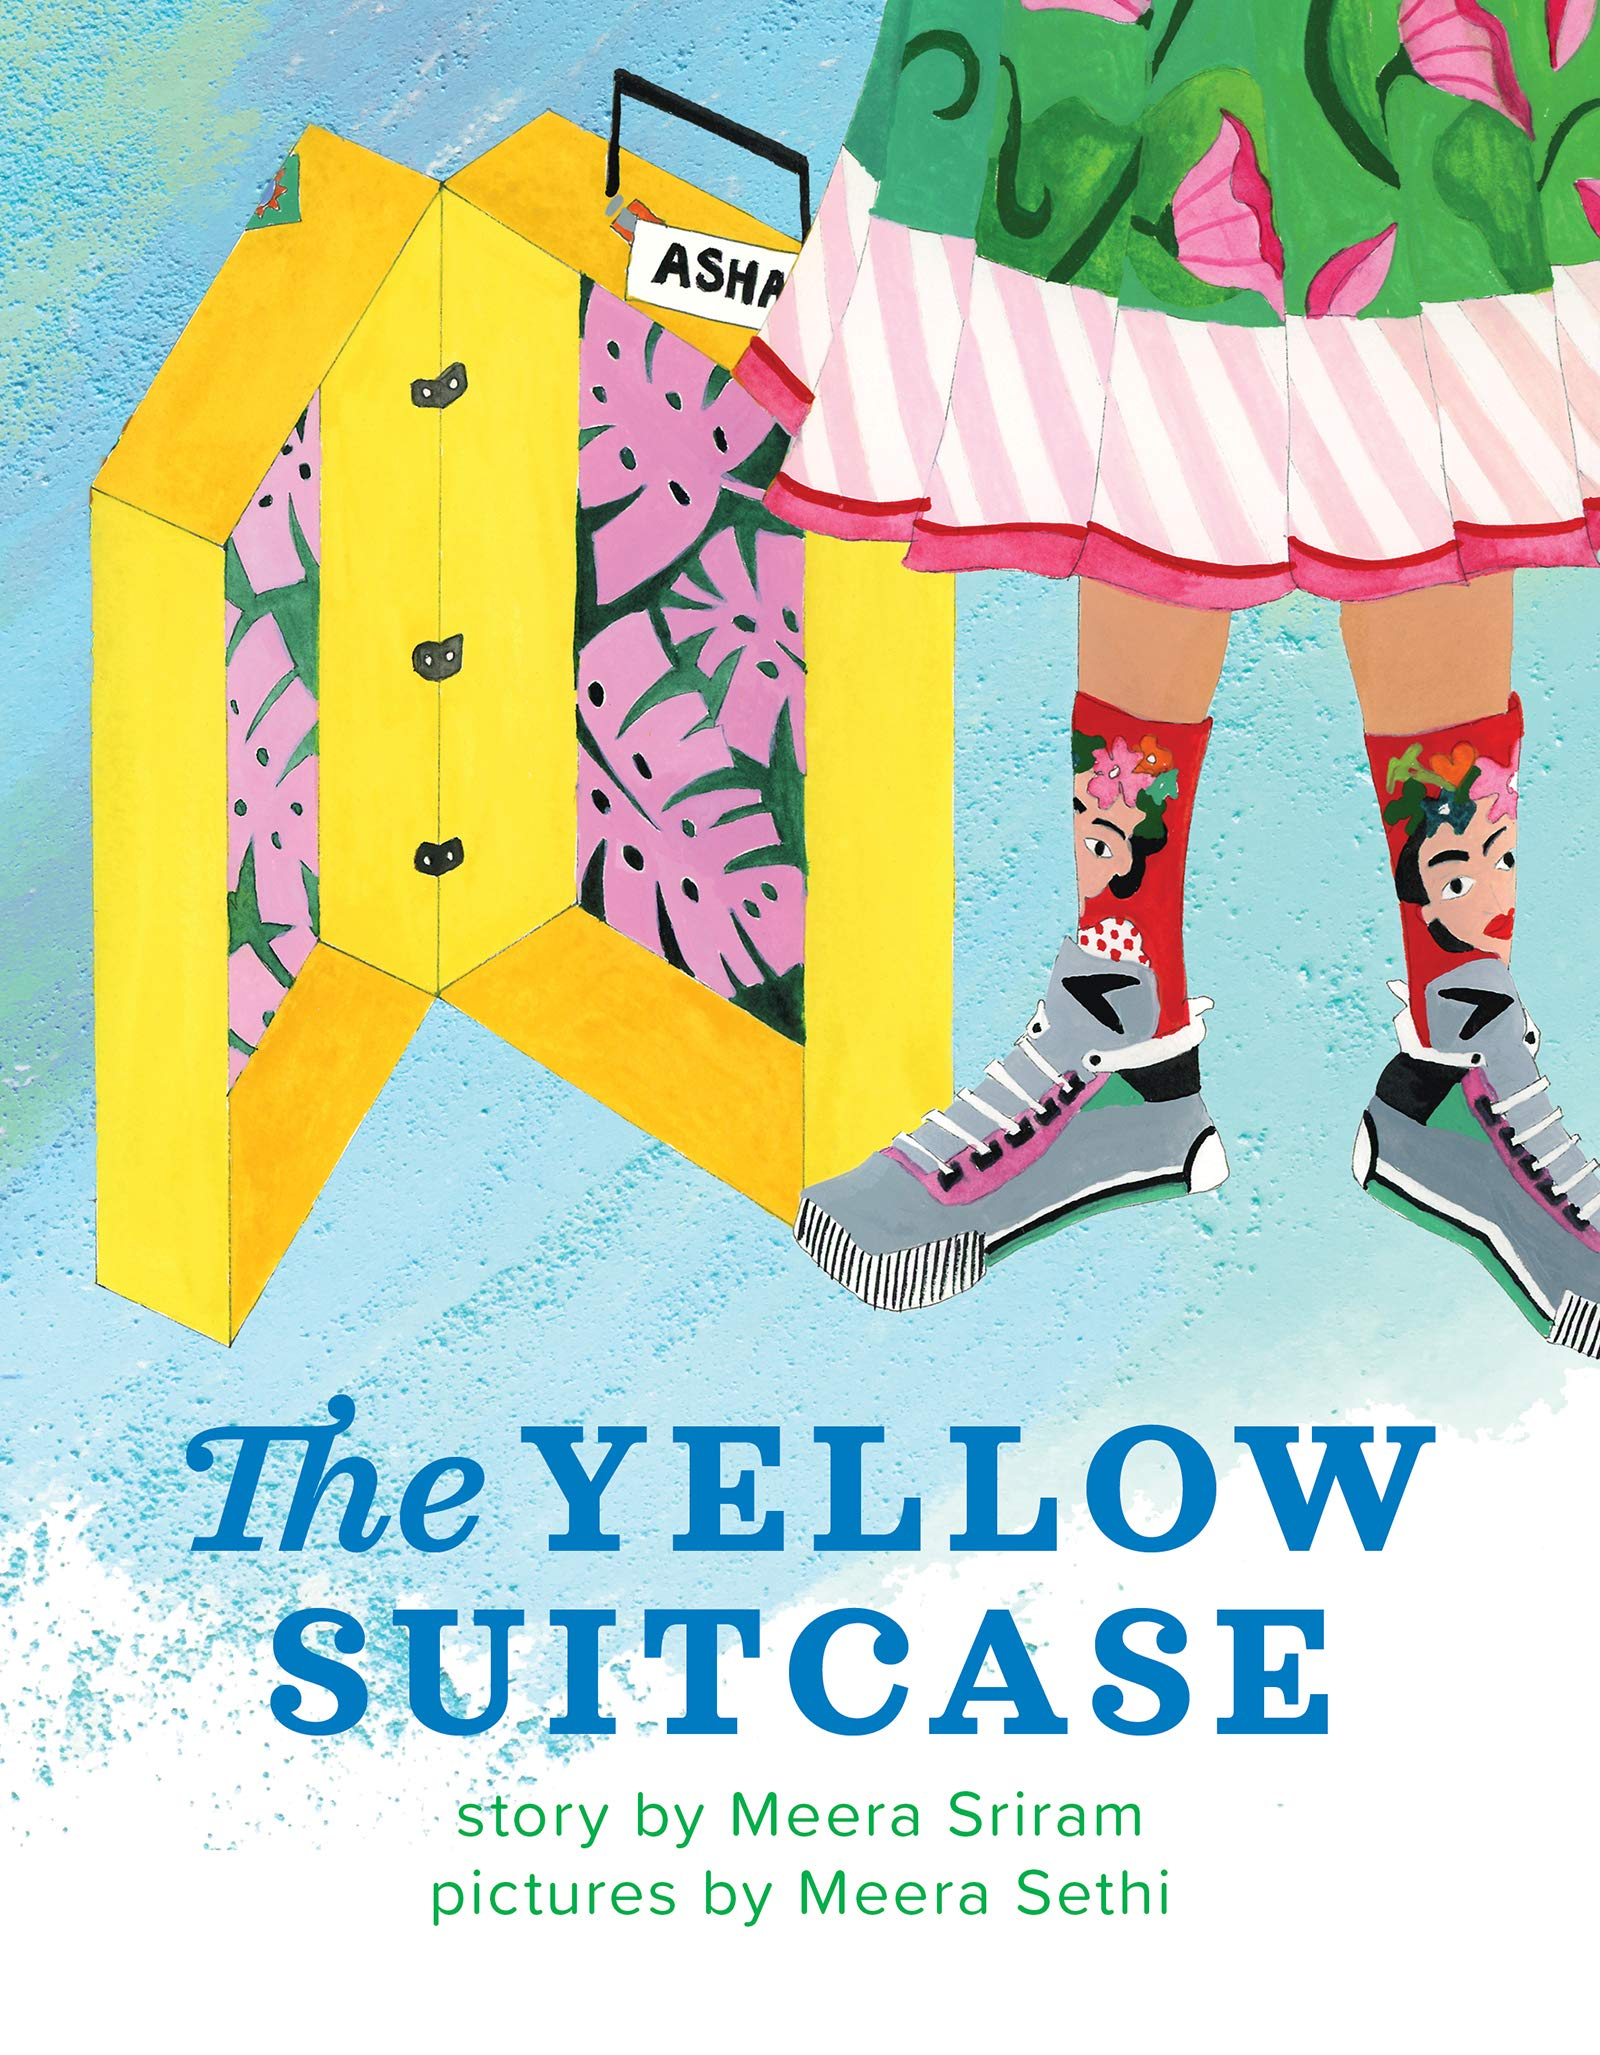 The Yellow Suitcase by Meera Sriram